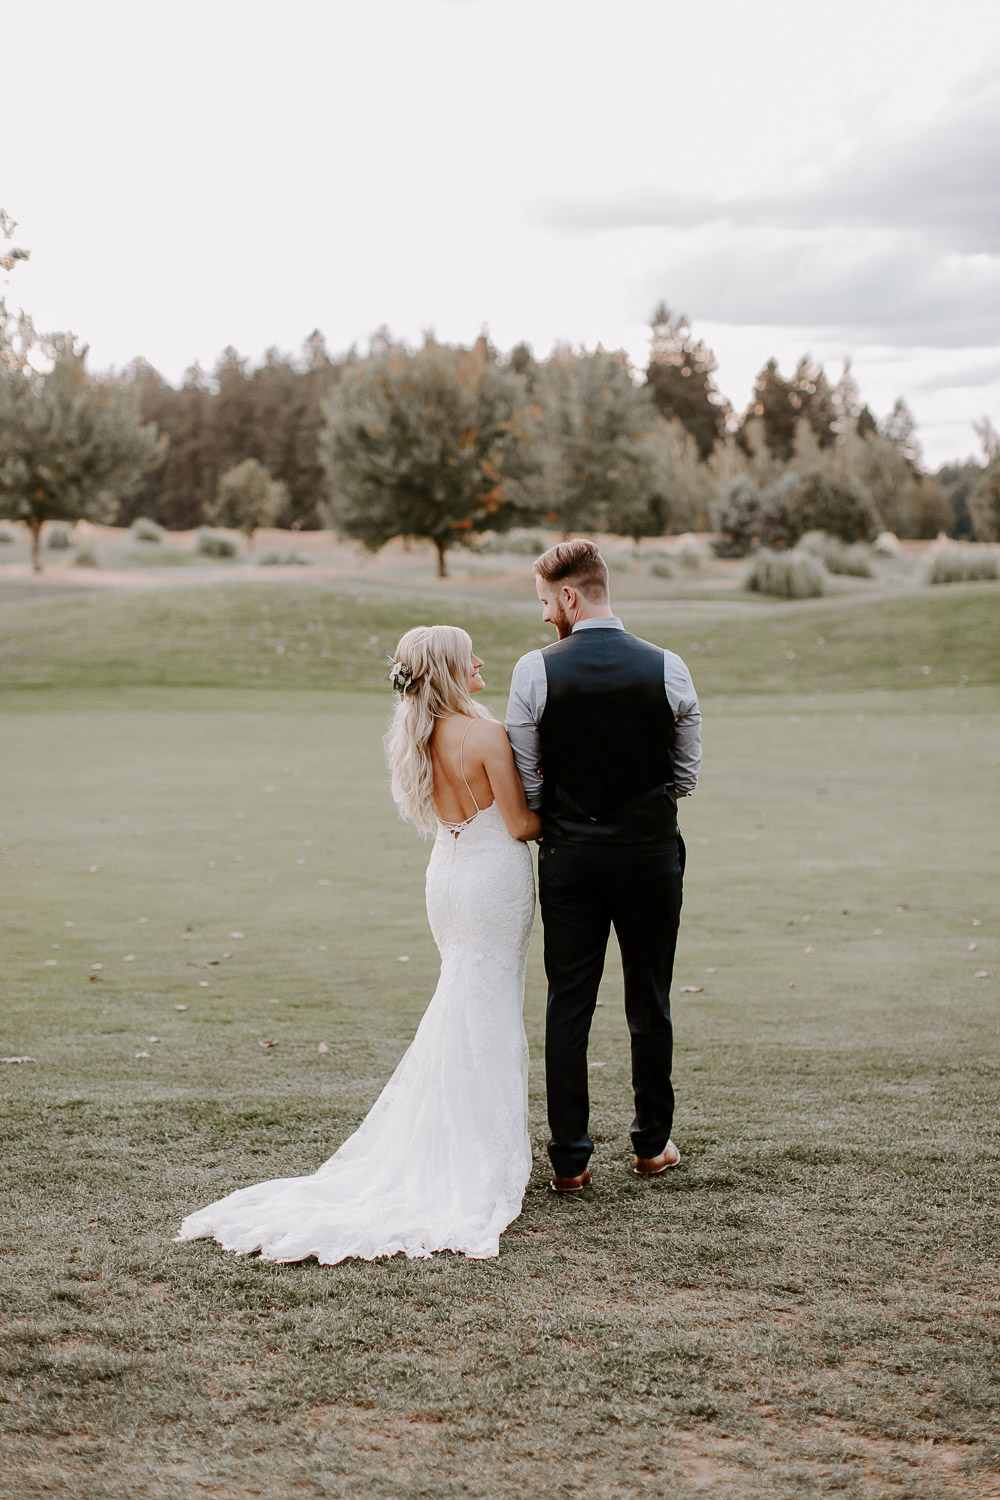 Boho-Wedding-Langdon-Farms-Wedding-Aurora-Oregon-LundynBridge-Photography-132